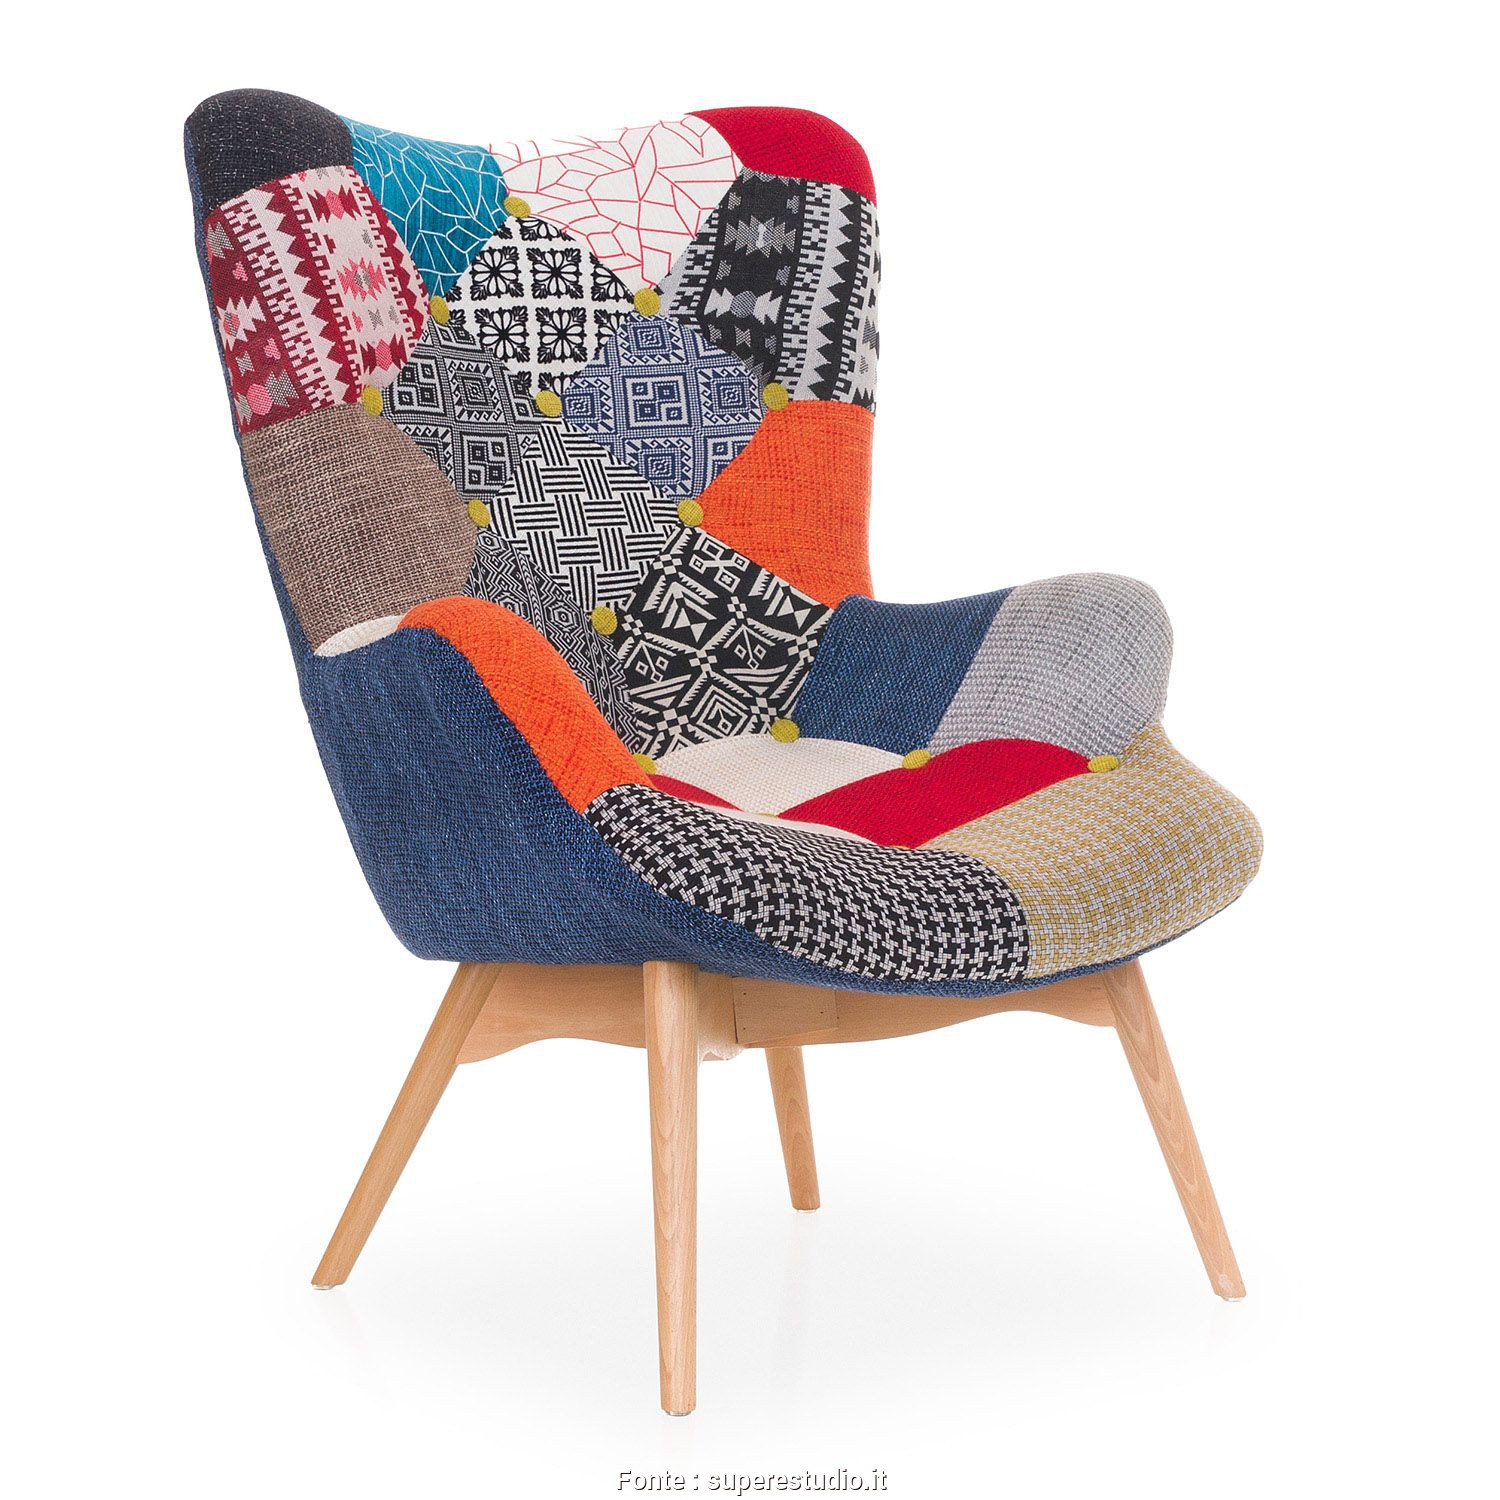 Poltrone Vintage Patchwork, Bellissimo Poltrona FREATHER -Patchwork- (Sedie Icone, Design) Contour R160